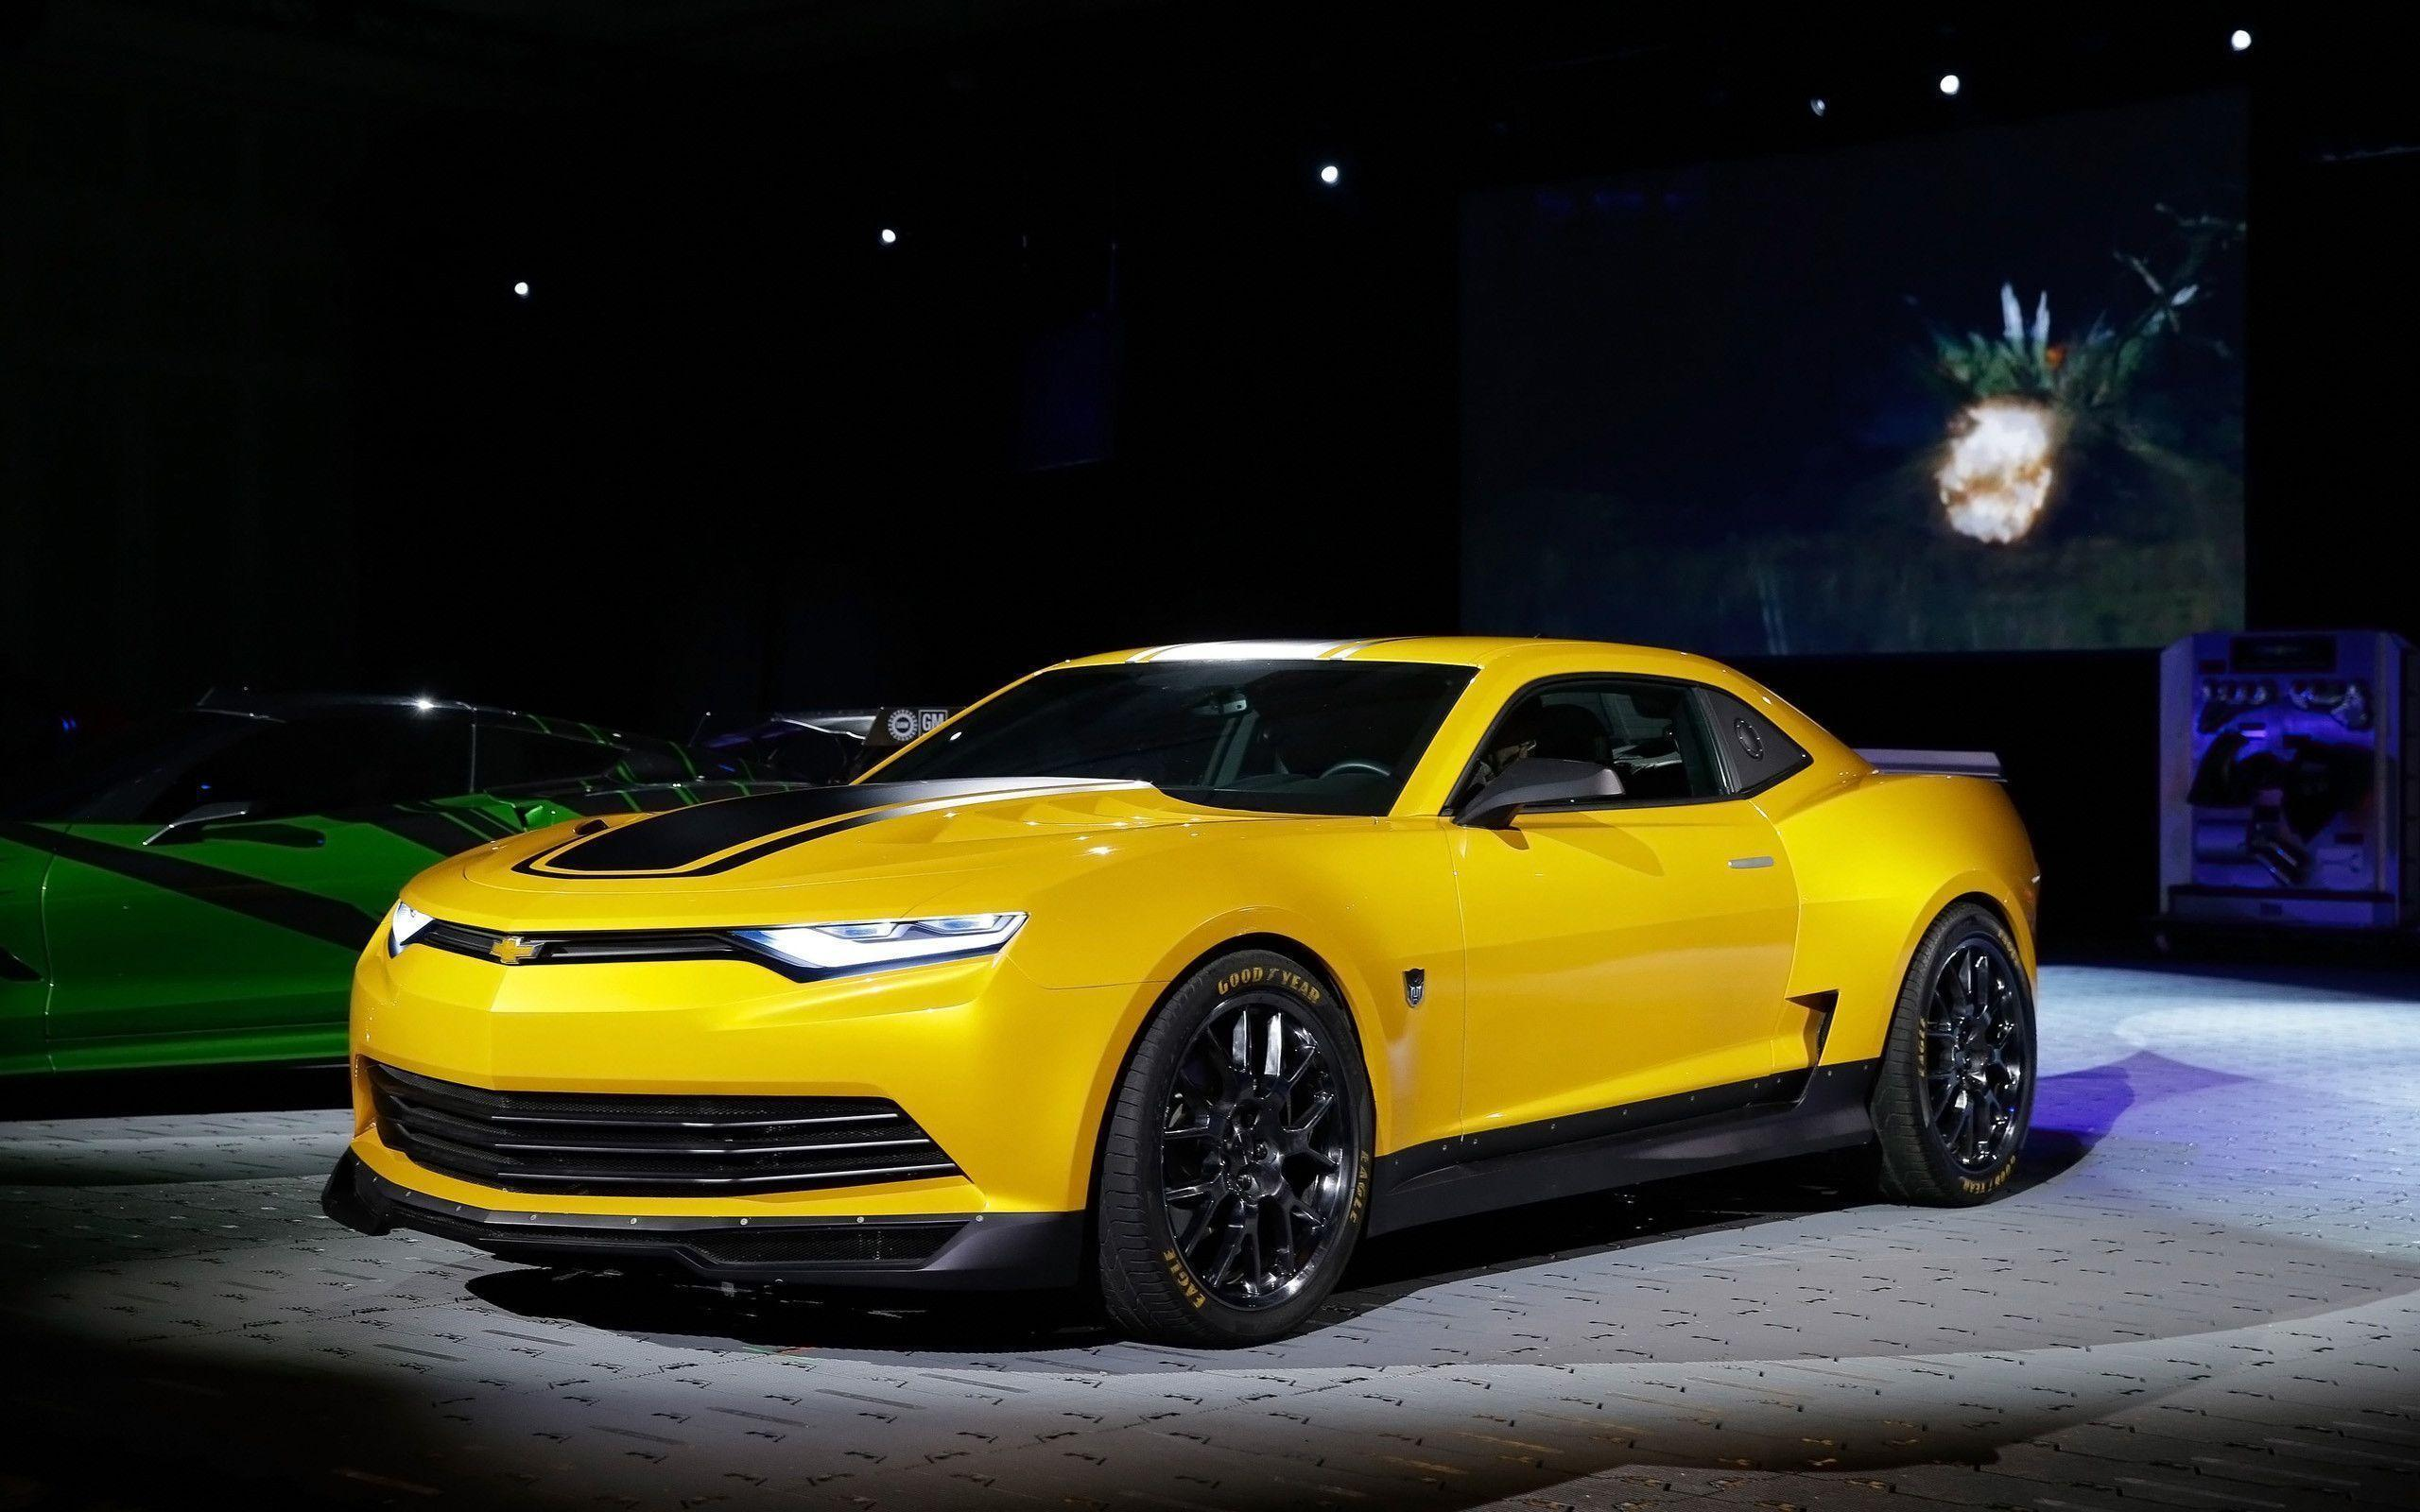 Chevrolet Camaro Wallpapers - Full HD wallpaper search - page 7